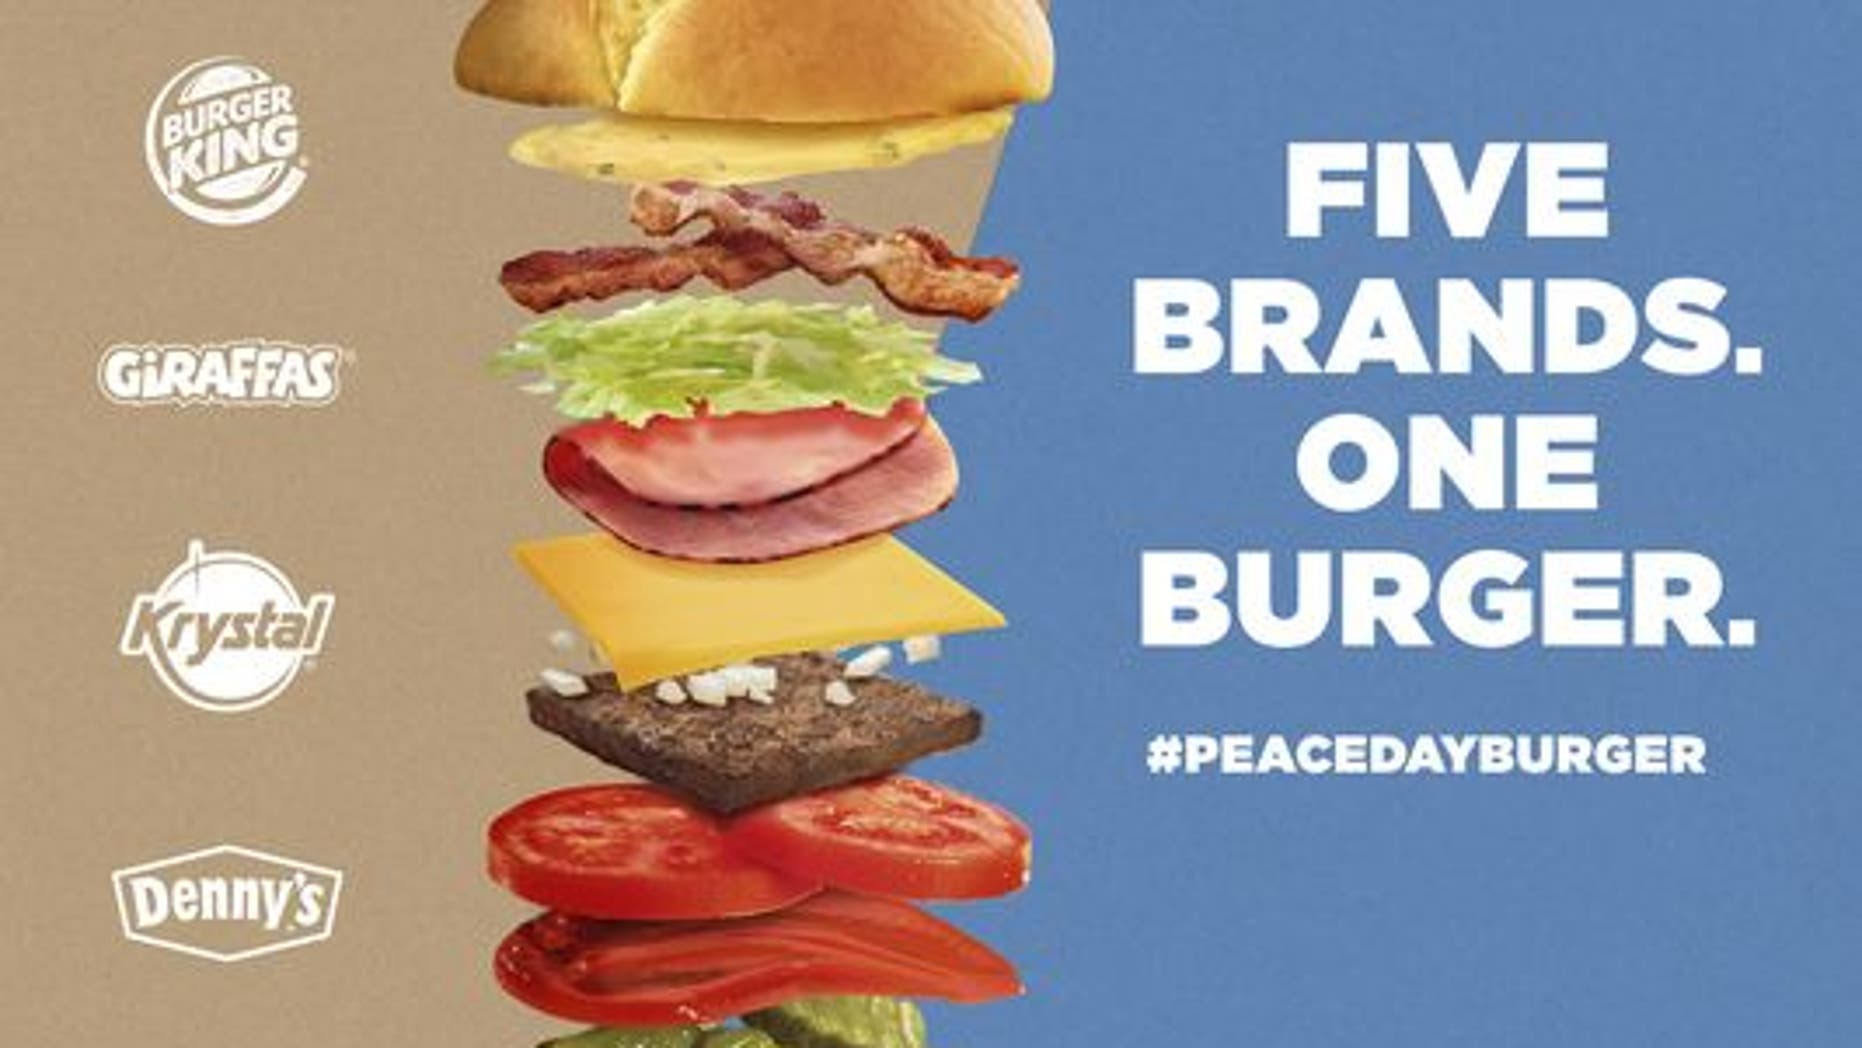 The new burger is a mashup between five fast food chains.